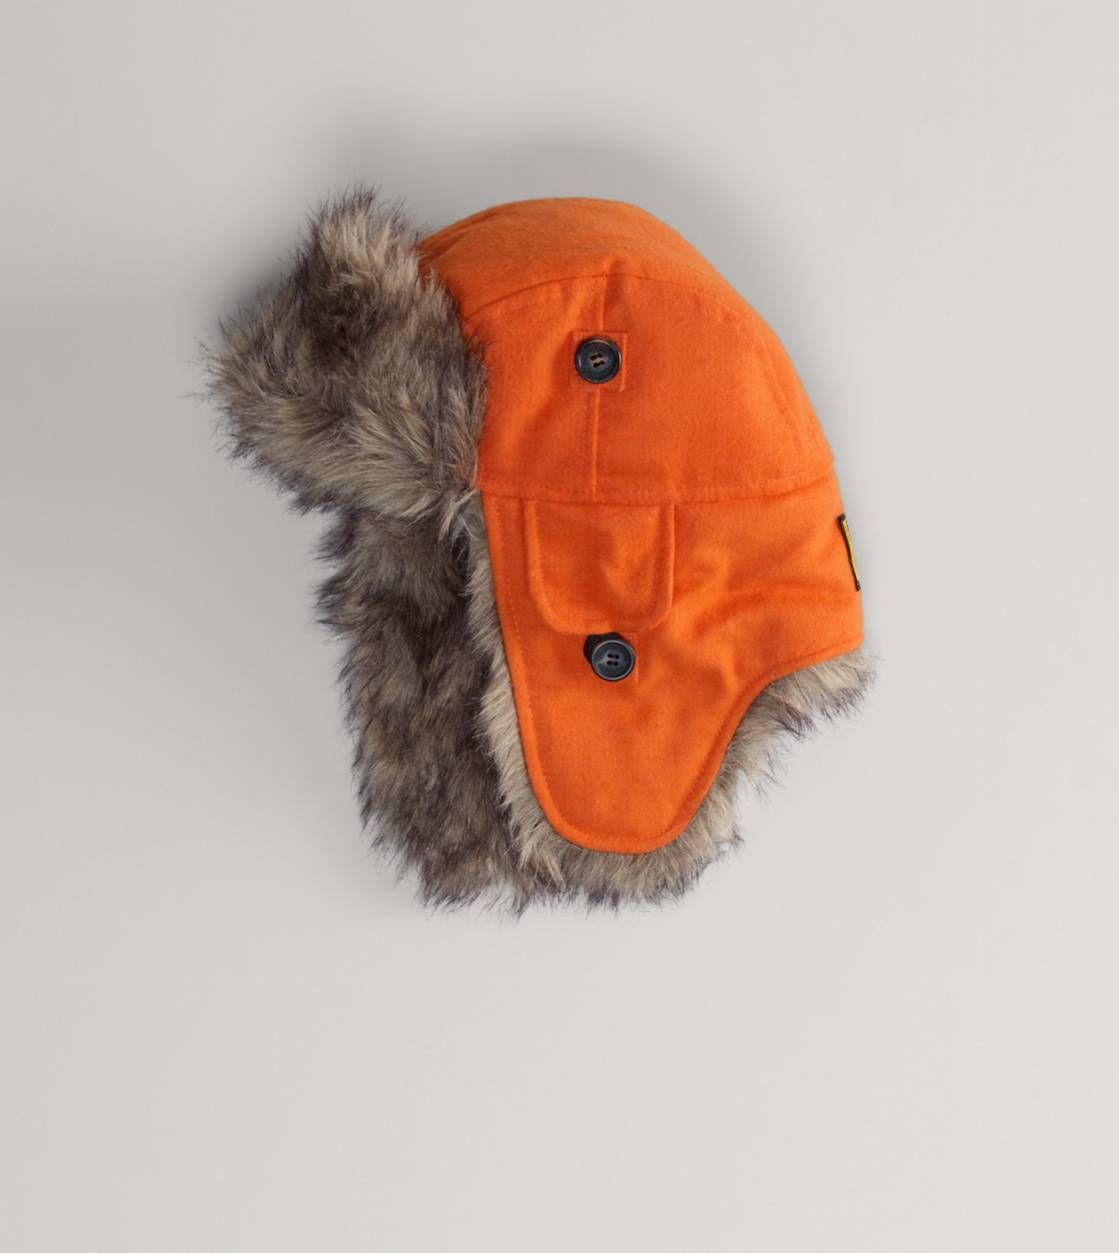 American Eagle Outfitters · AEO Bottle Opener Trapper Hat 9652c19e42c3